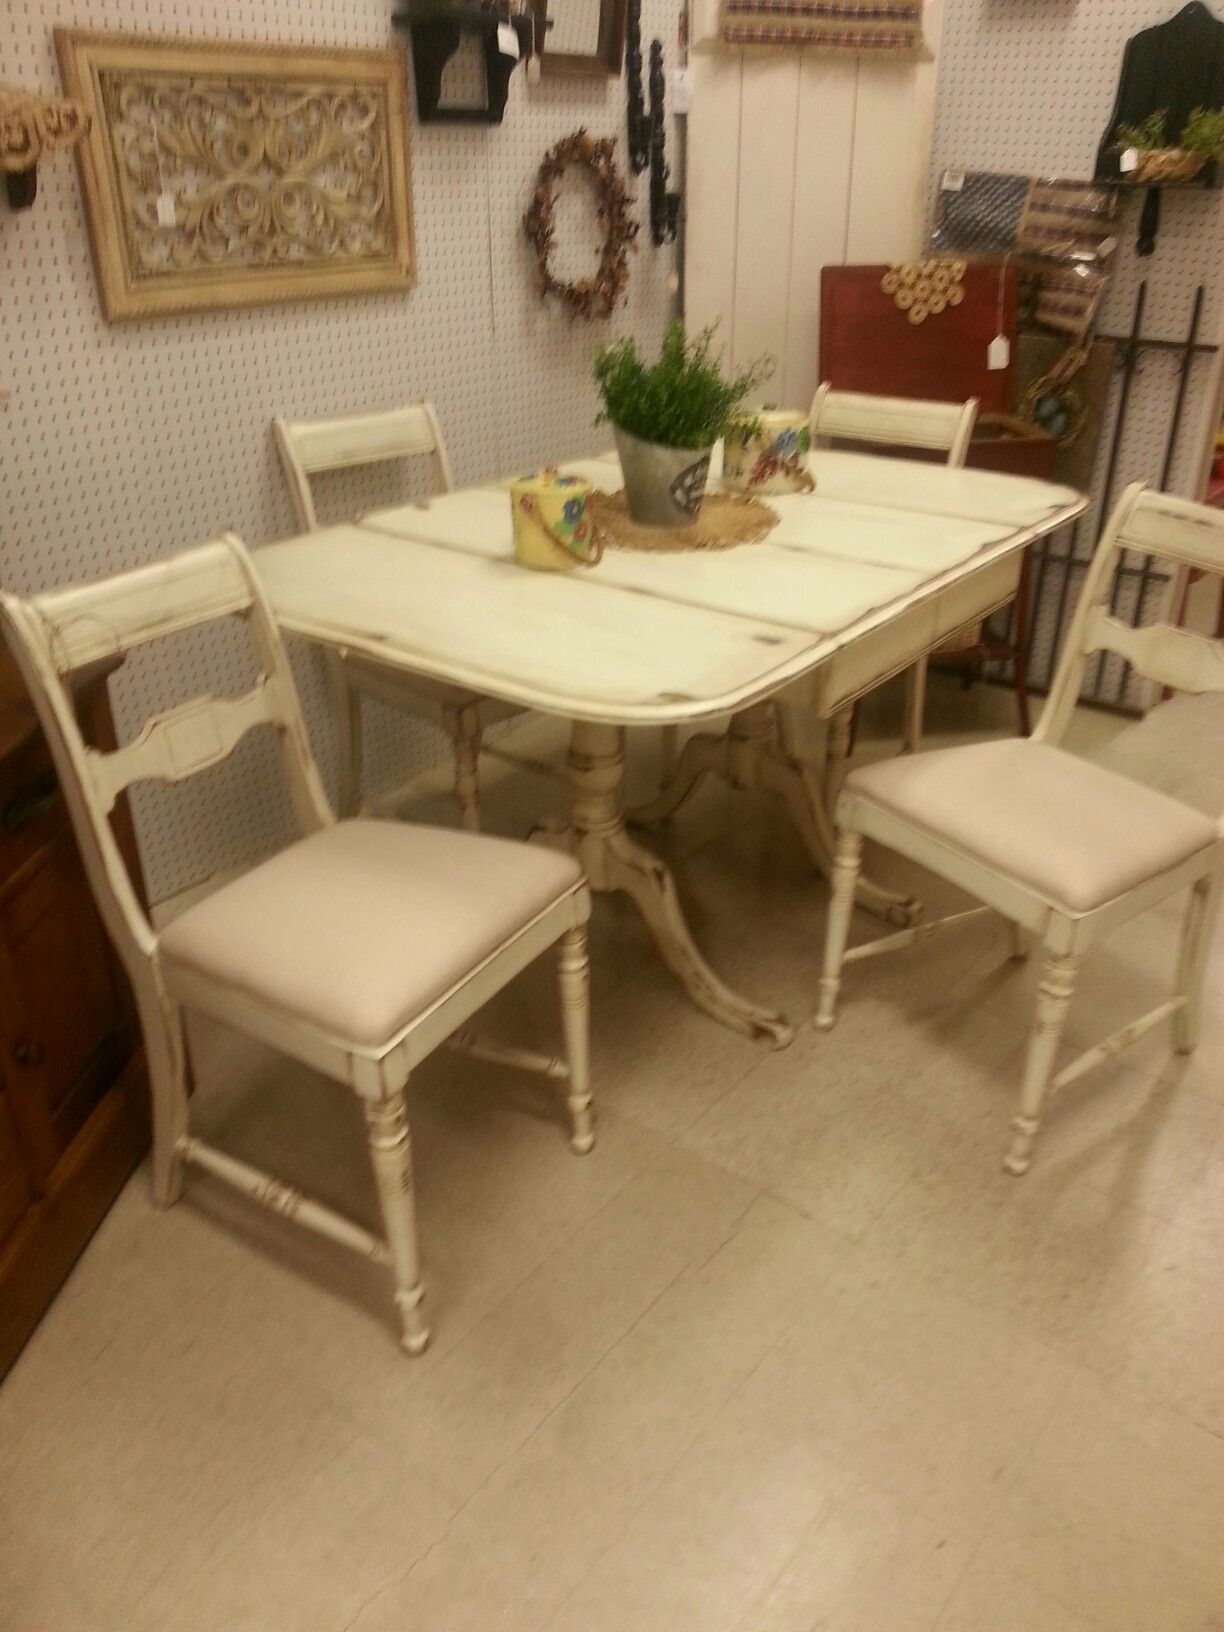 Vintage table and chairs in Annie Sloan Old White paint with clear and dark wax.